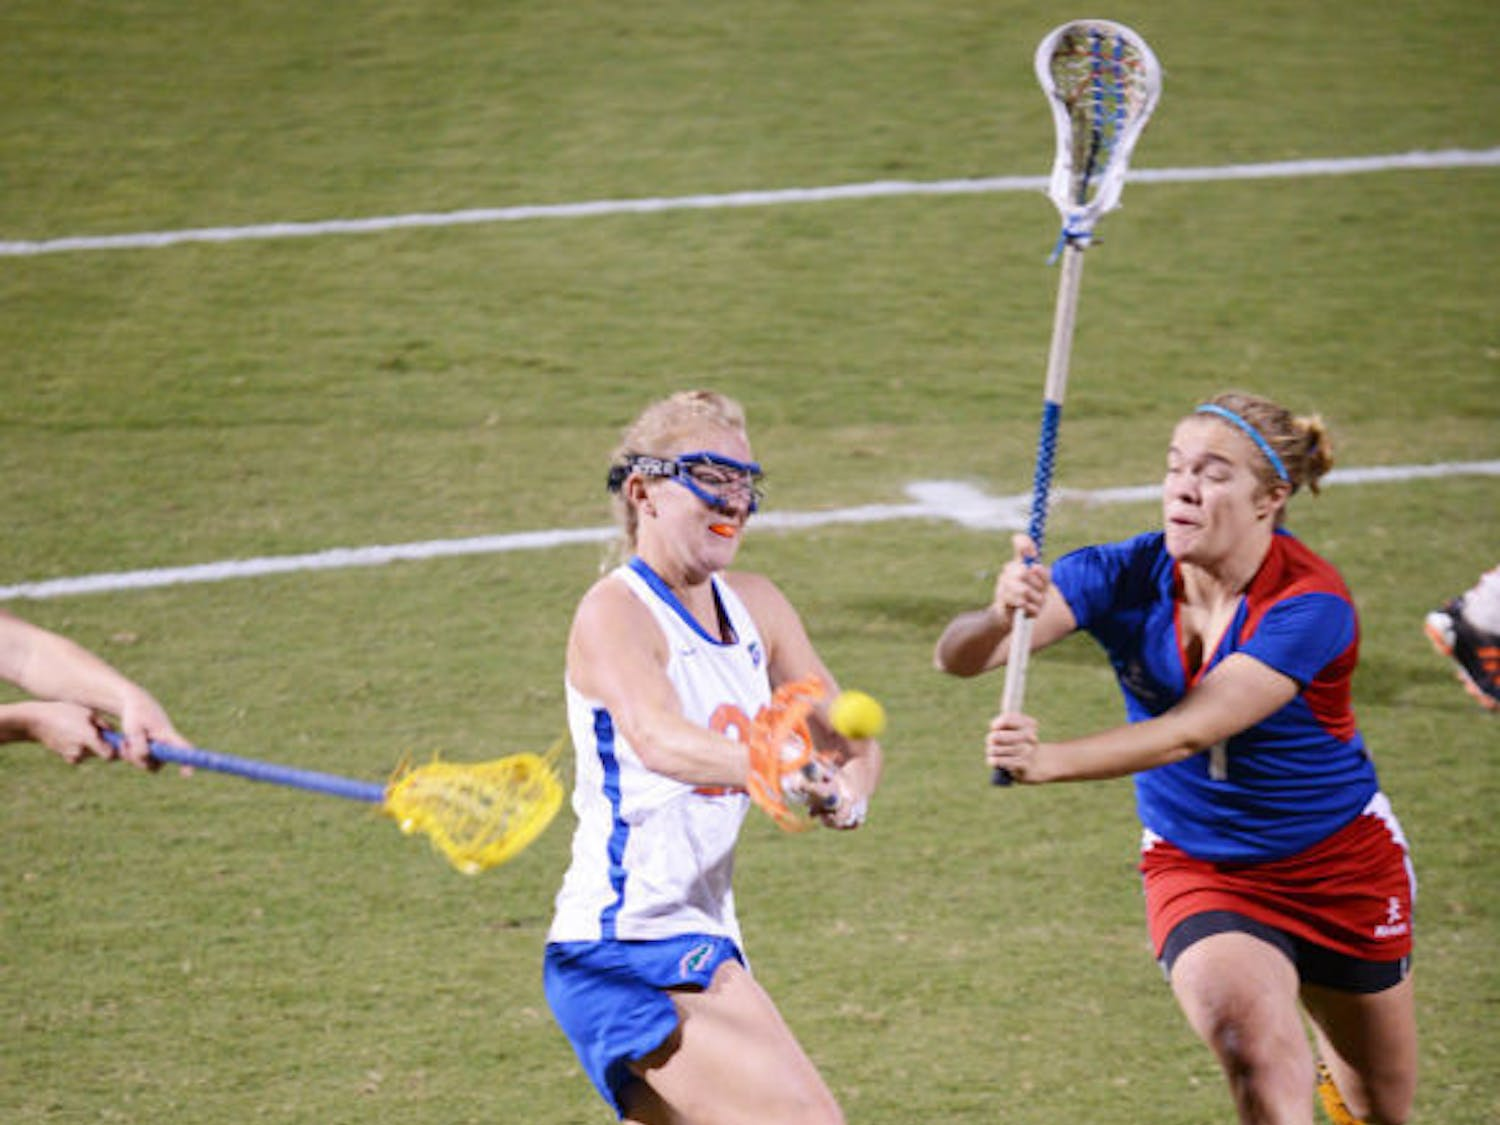 Senior Brittany Dashiell (left) attempts a shot during Florida's 18-13 exhibition win against England on Jan. 24 at Dizney Stadium. Dashiell and the Gators defeated Stony Brook 16-9 on Wednesday.